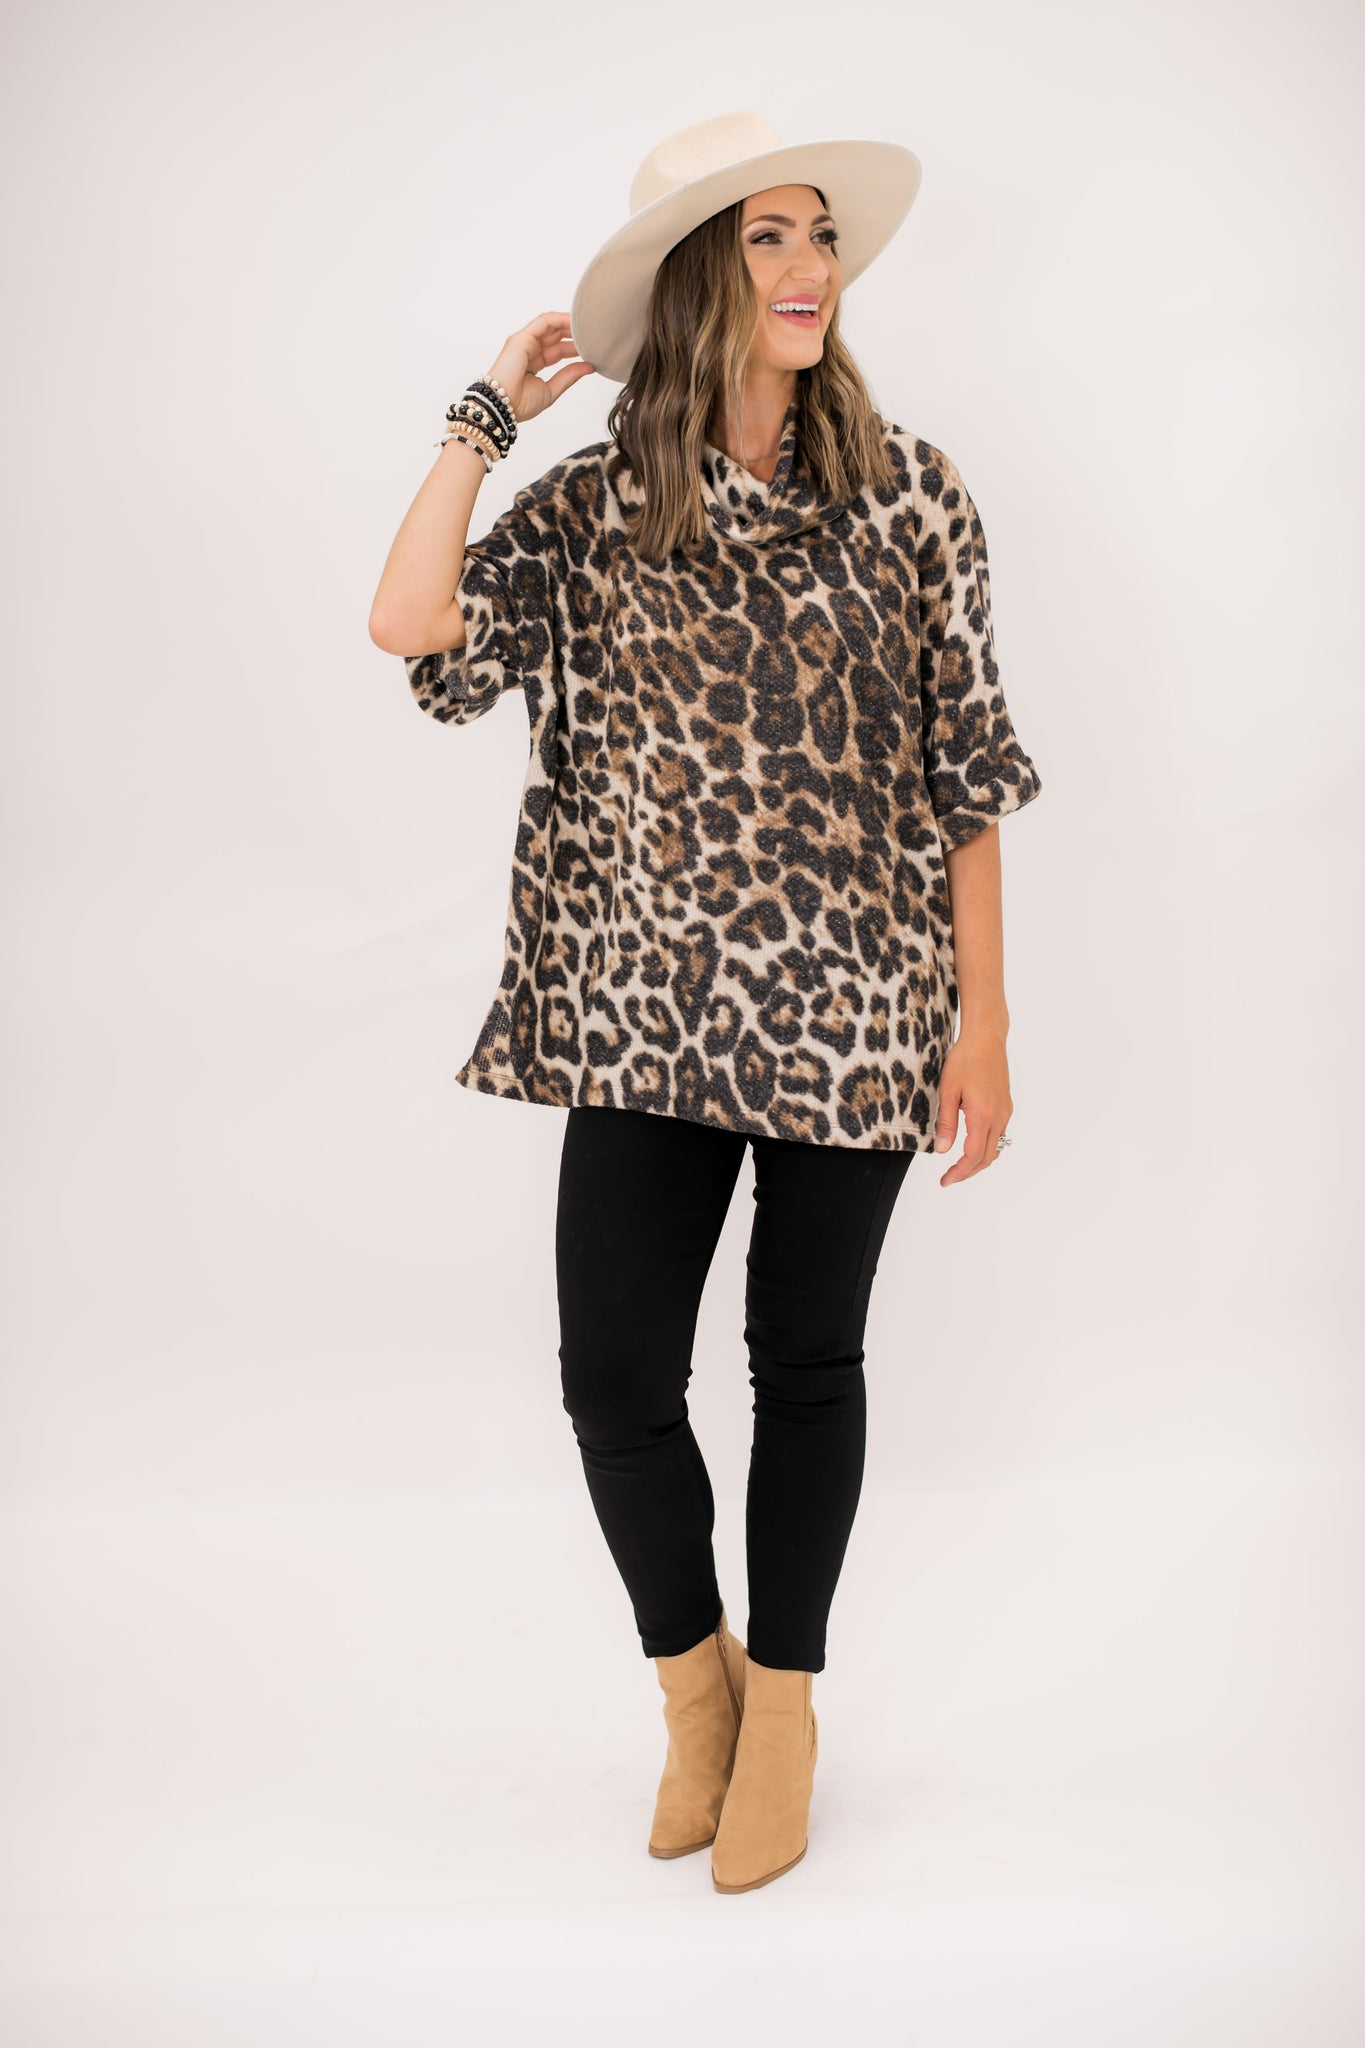 Brushed Animal Print Turtleneck Oversized Top